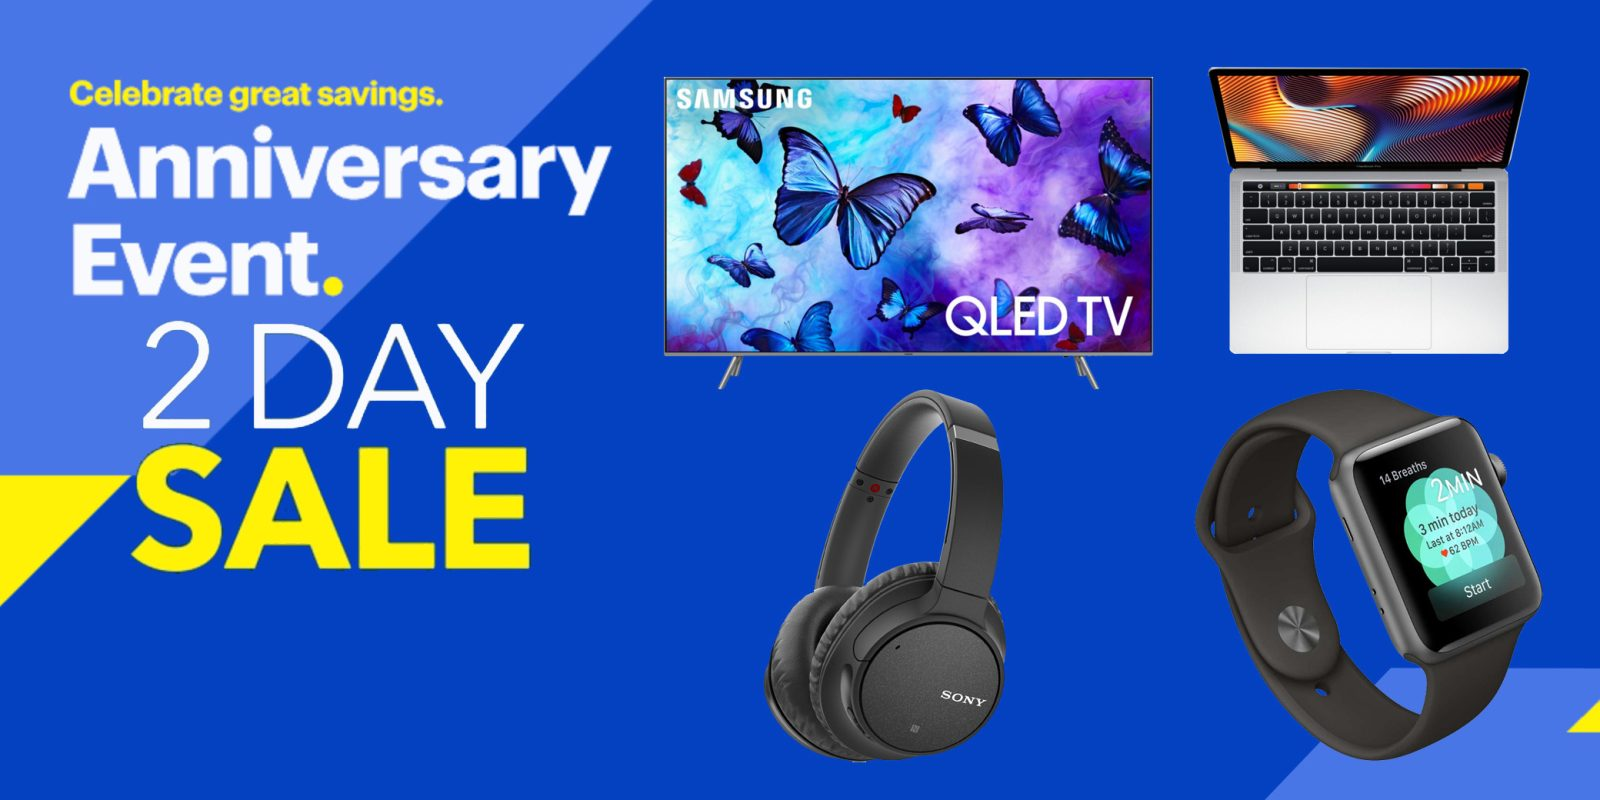 best buy 2 day anniversary sale up to 750 off macbooks apple watch tvs much more - Best Buy Day After Christmas Sale